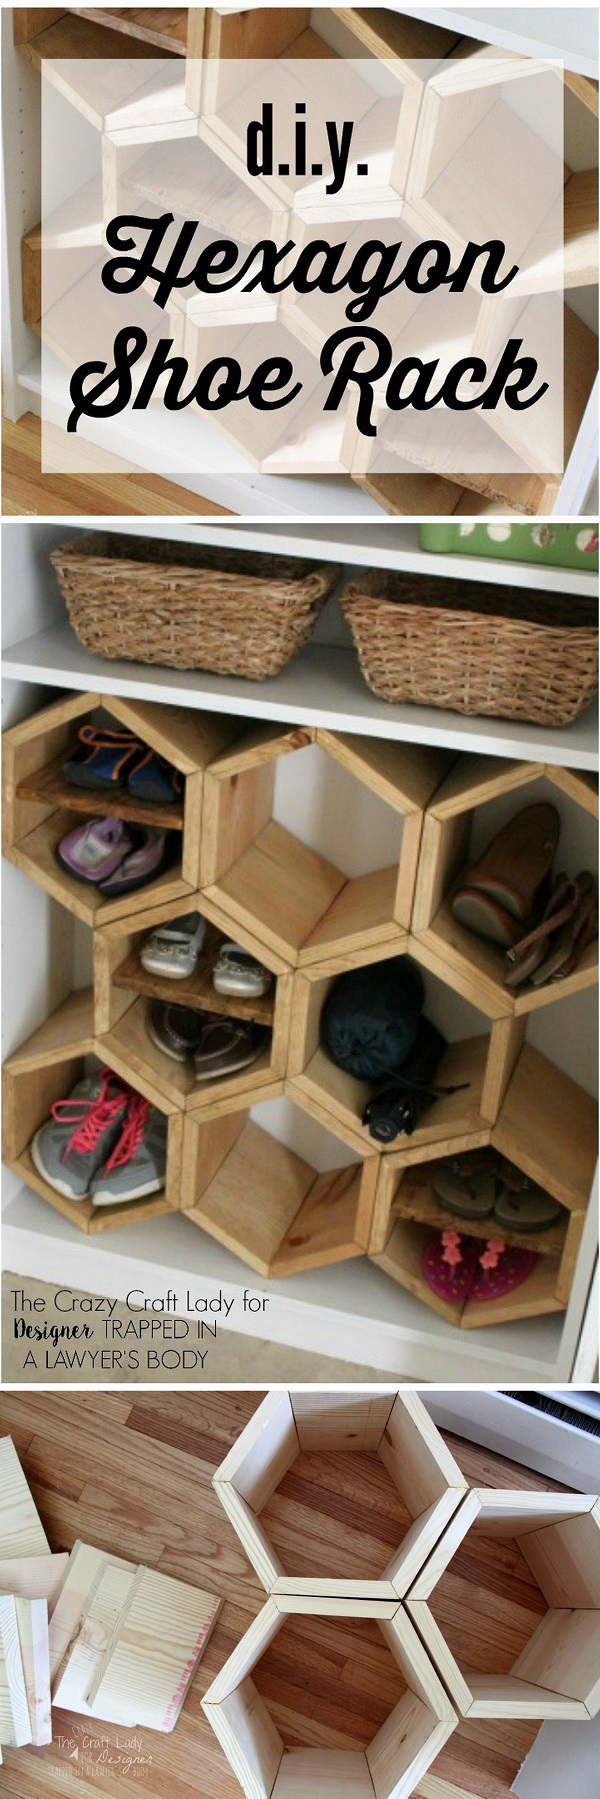 Diy shoe rack 60 easy project ideas you can build on a budget 60 easy diy shoe rack ideas you can build on a budget check out solutioingenieria Choice Image